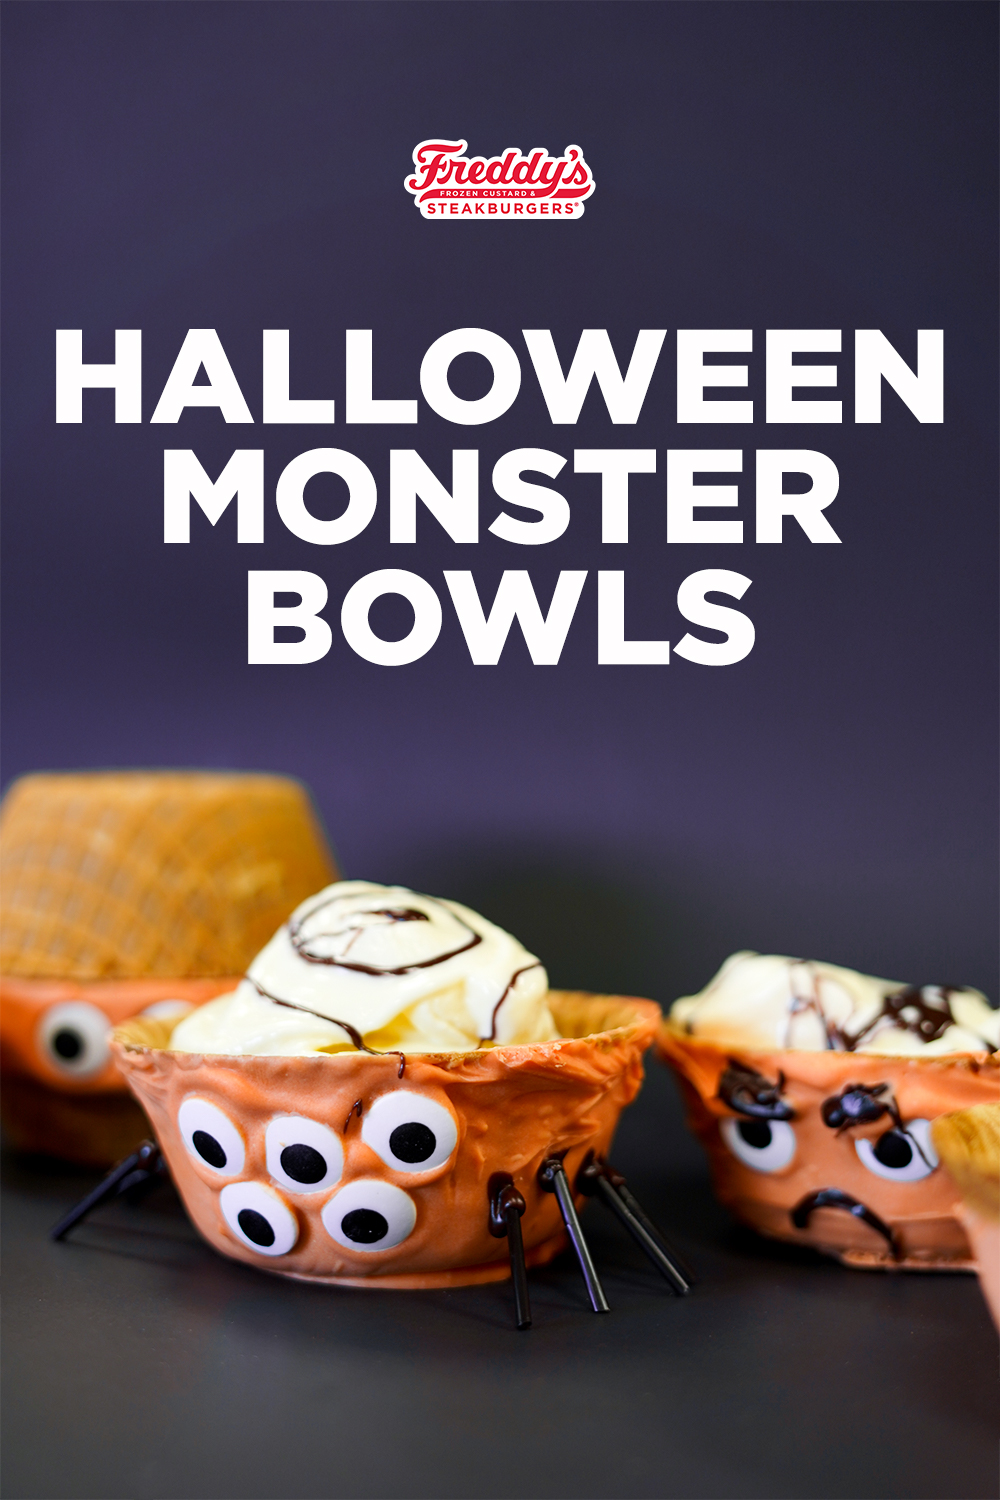 Monster Bowls made with our Freddy's Frozen Custard